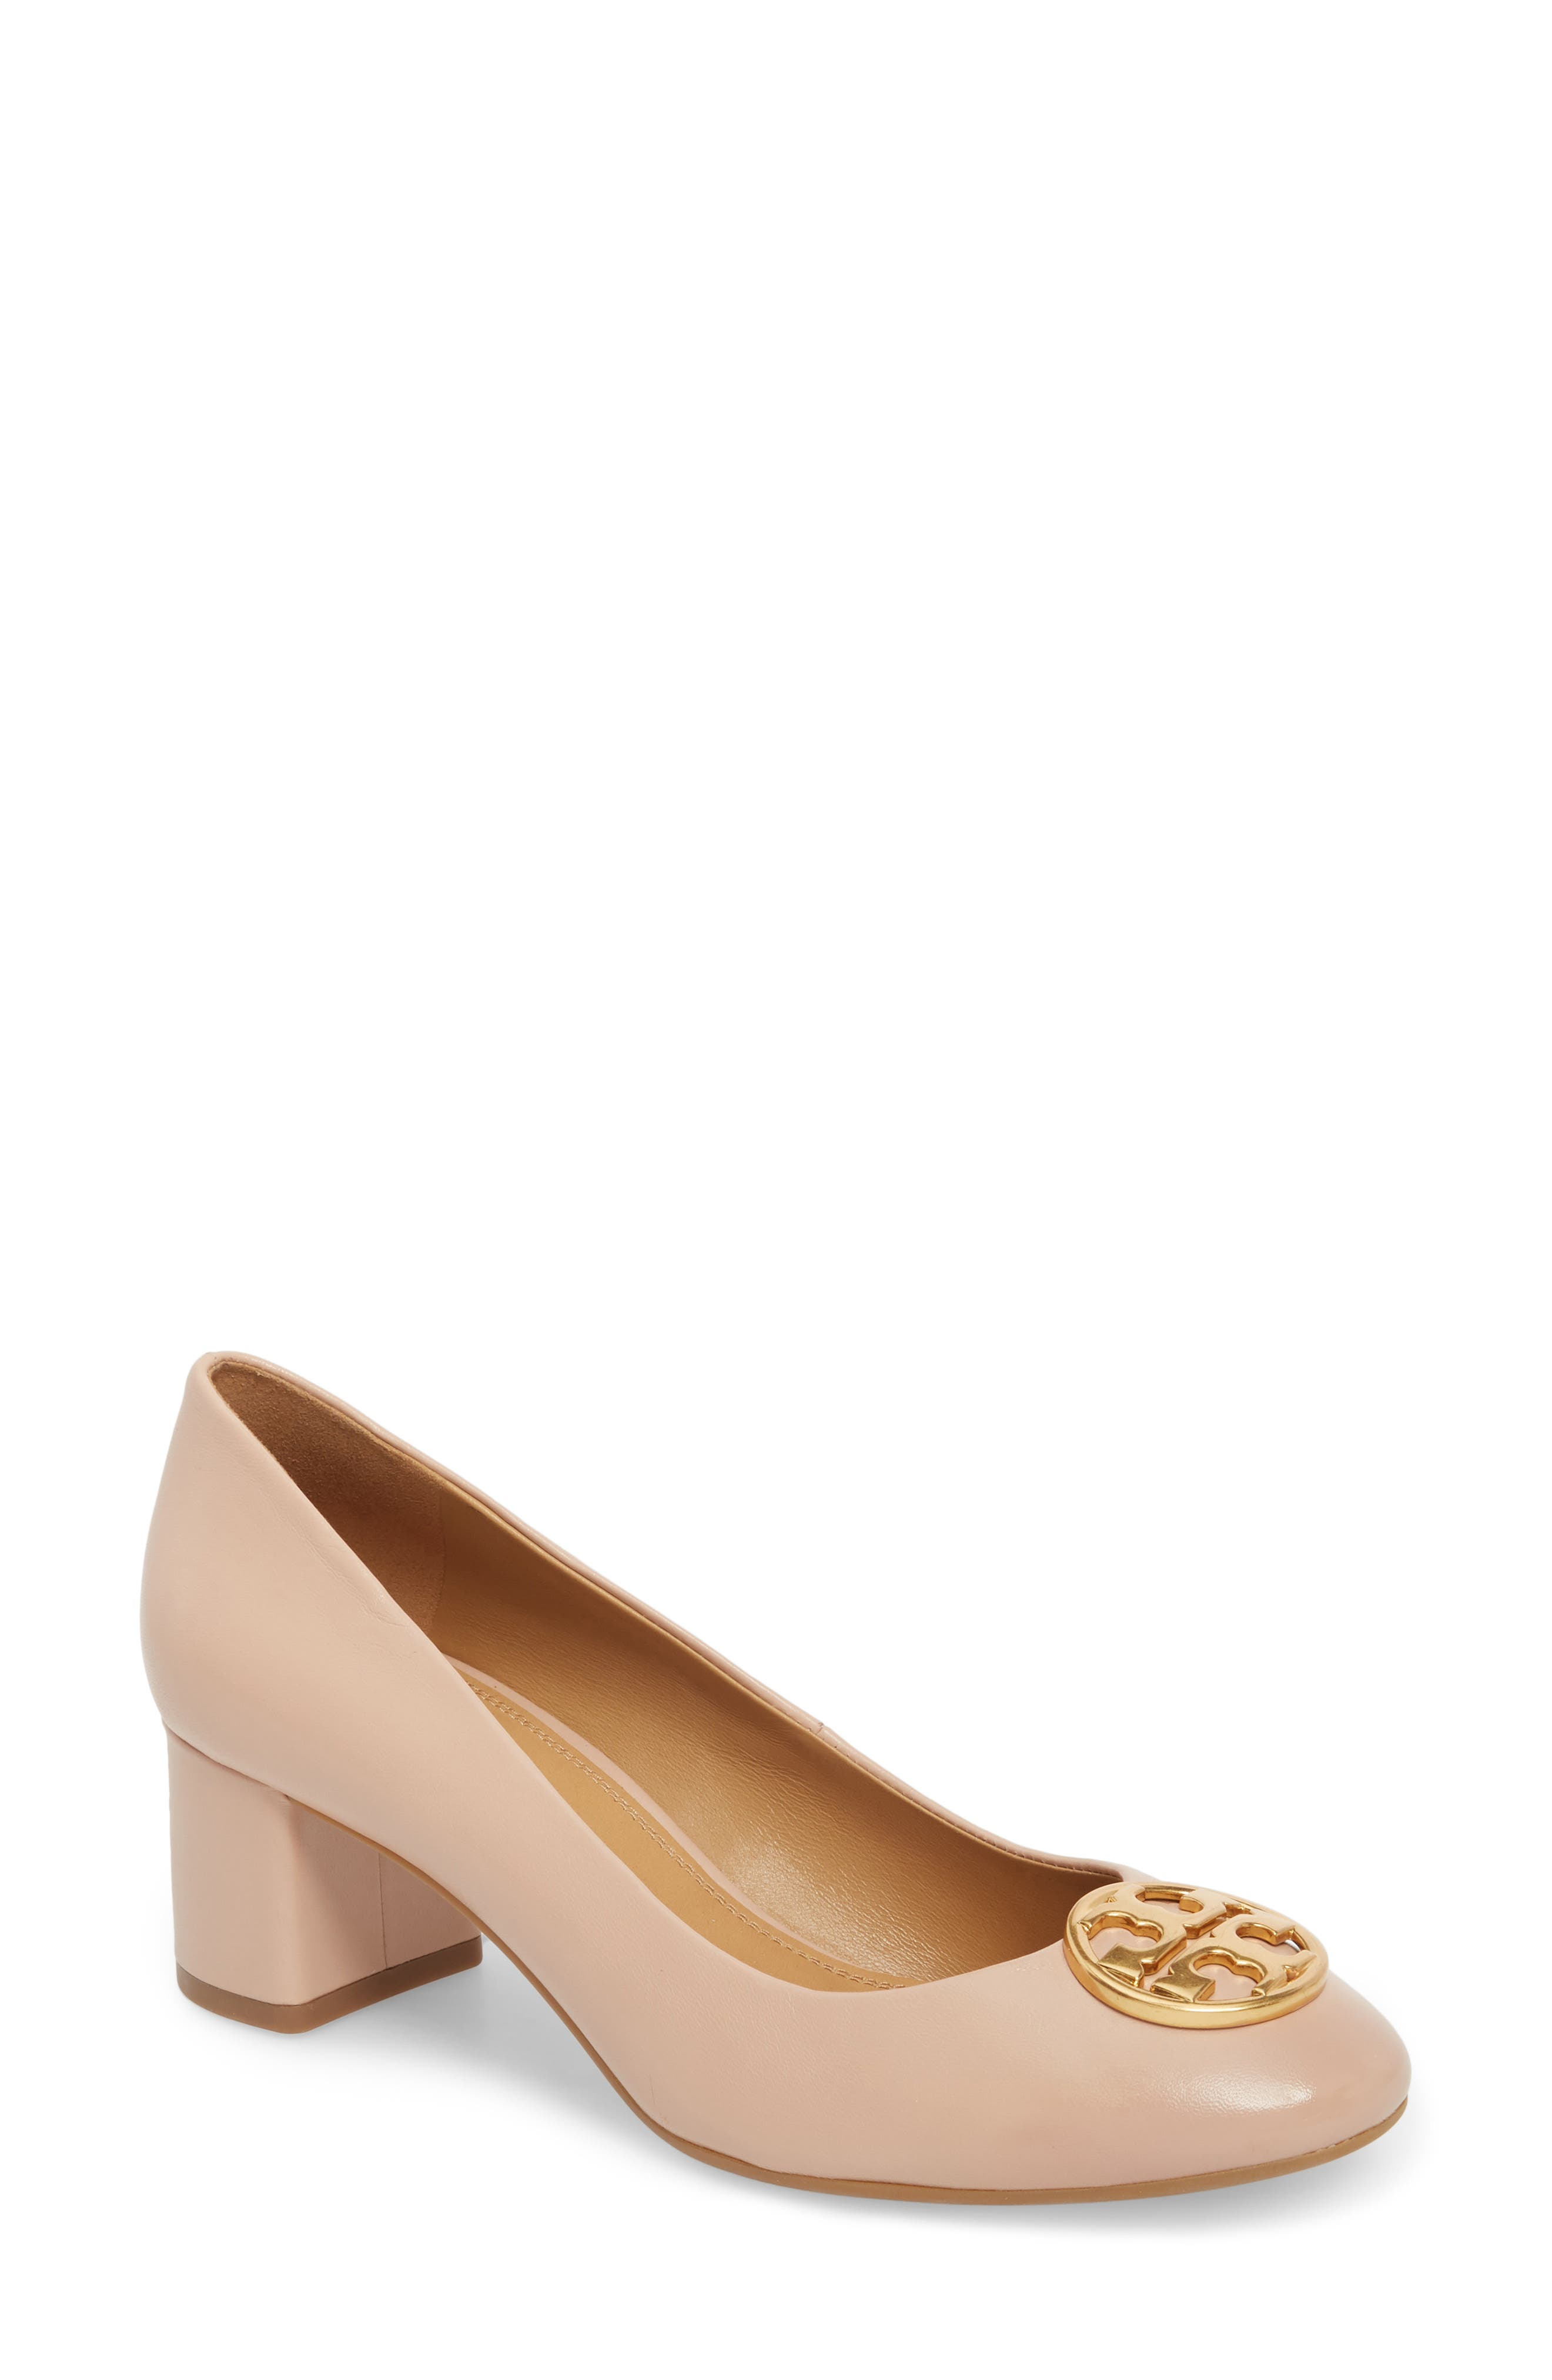 Chelsea Pump,                             Main thumbnail 1, color,                             Goan Sand